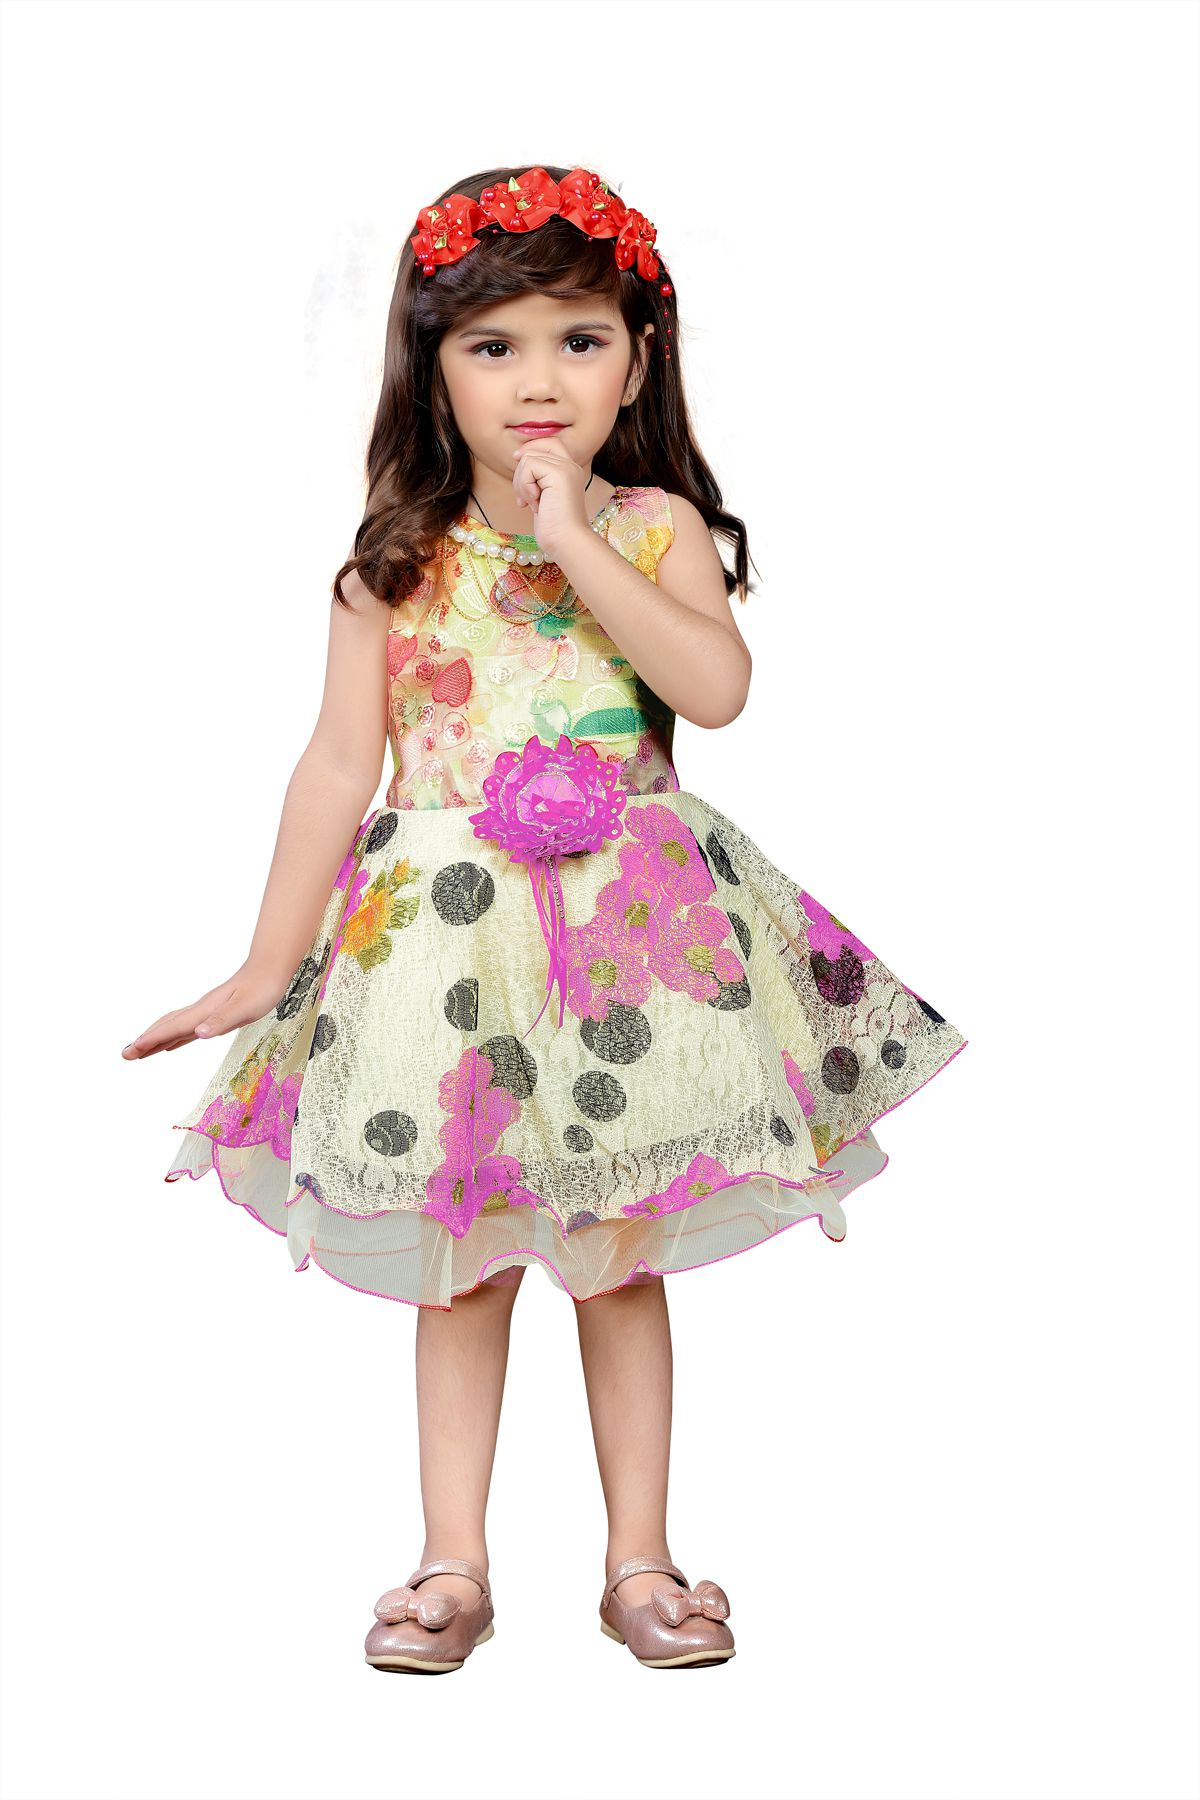 6cd417803df5b Dubai Creation Baby Girls Frock Dress - Buy Dubai Creation Baby Girls Frock Dress  Online at Low Price - Snapdeal